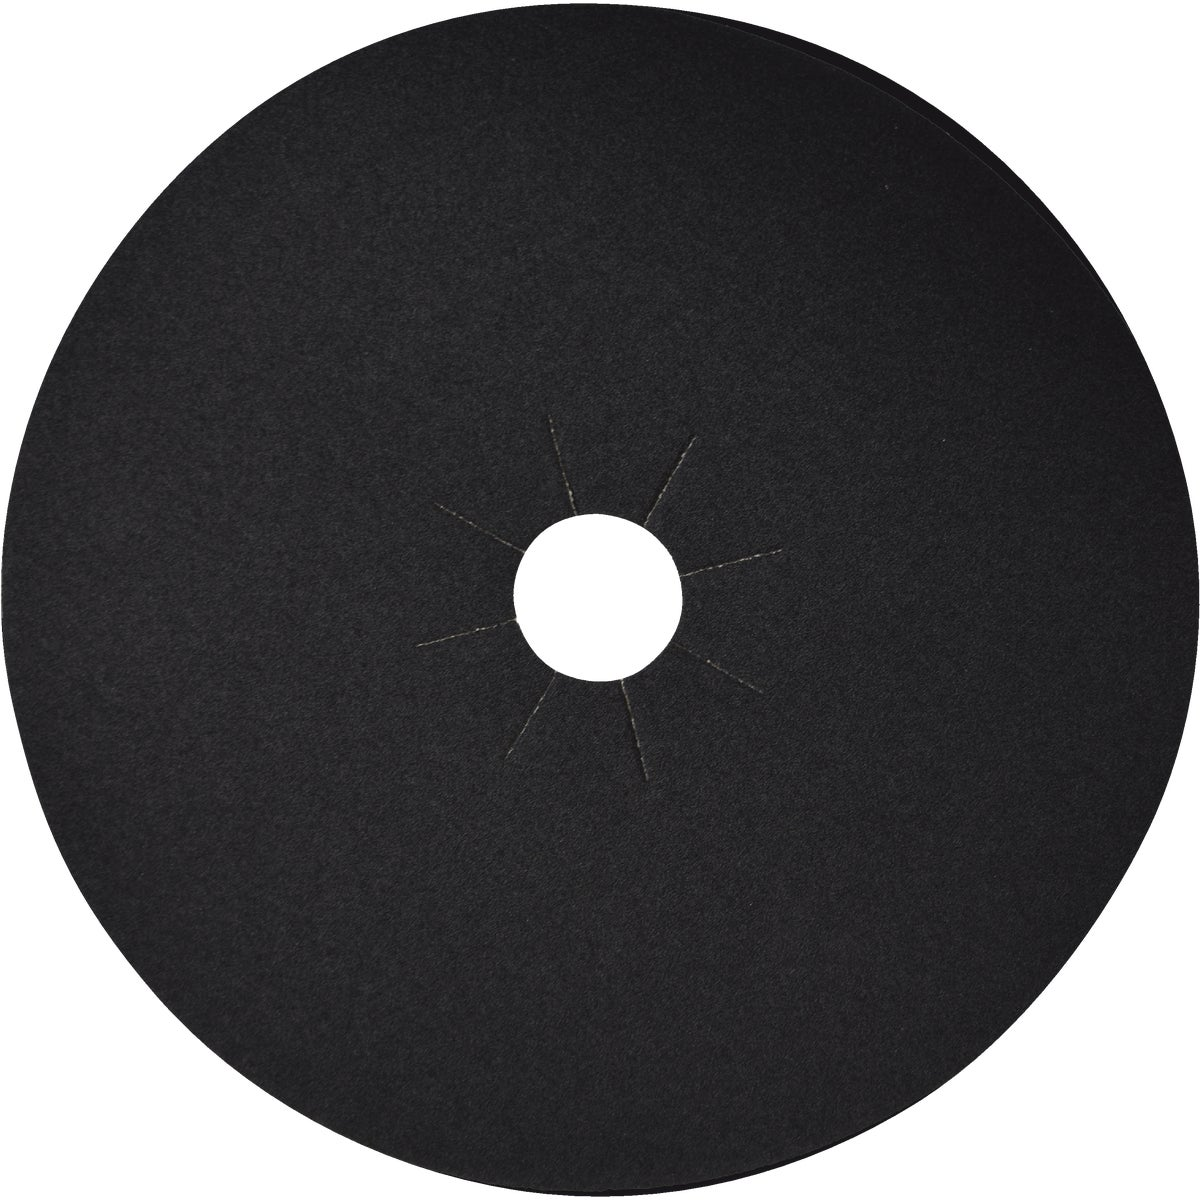 "17"" 36G FLR SANDING DISC - 007-817236 by Virginia Abrasives"